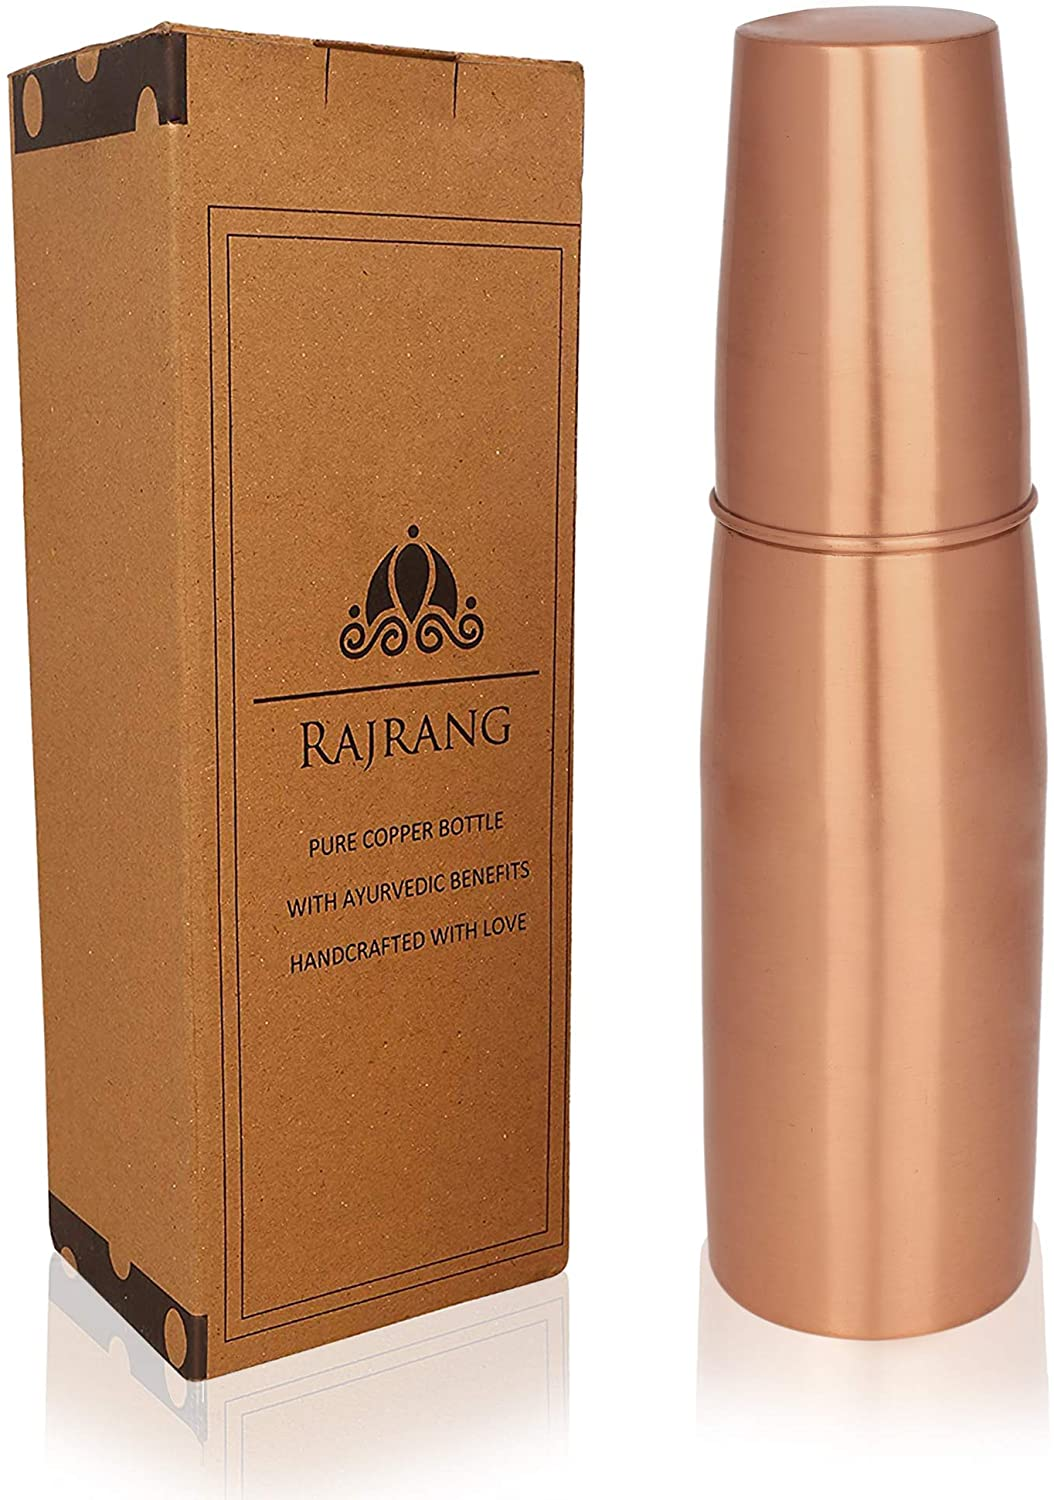 RAJRANG BRINGING RAJASTHAN TO YOU Yoga Water Bottle with Glass 950 ml Leak Proof for Ayurvedic Health Benefits Pure Copper Bottles for Travelling Purpose & Home & Kitchen